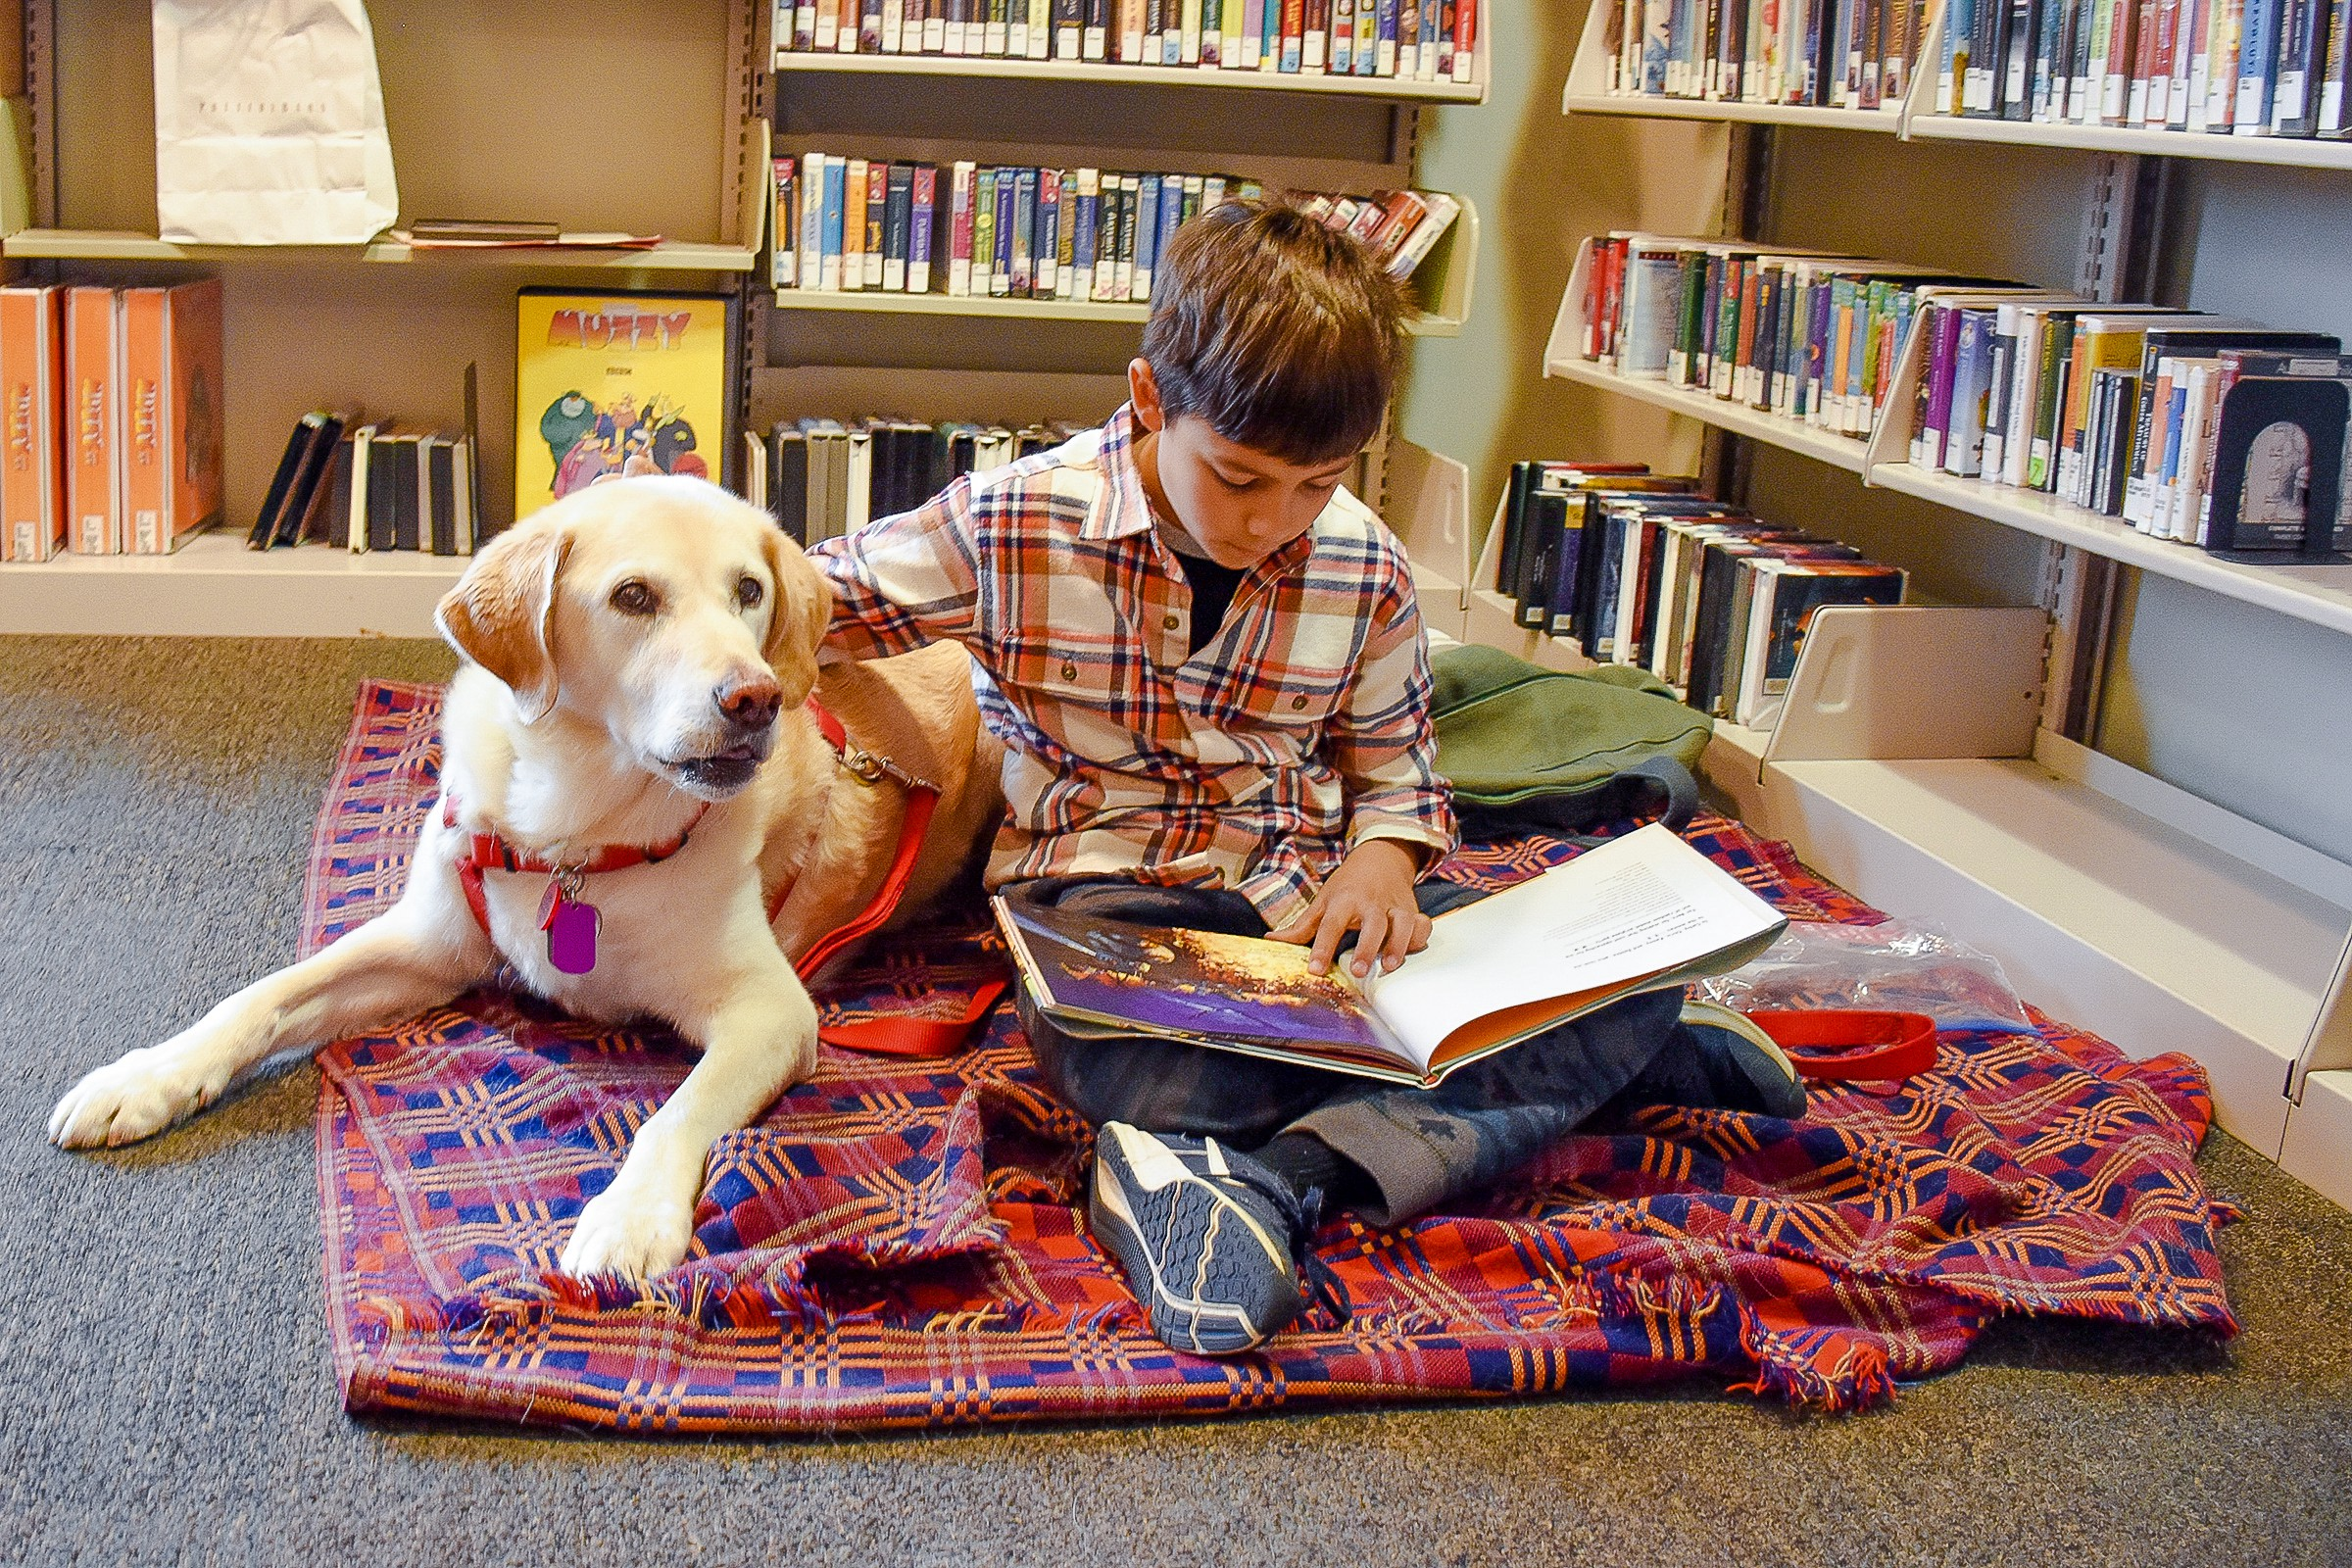 Image result for Library read to the dog""